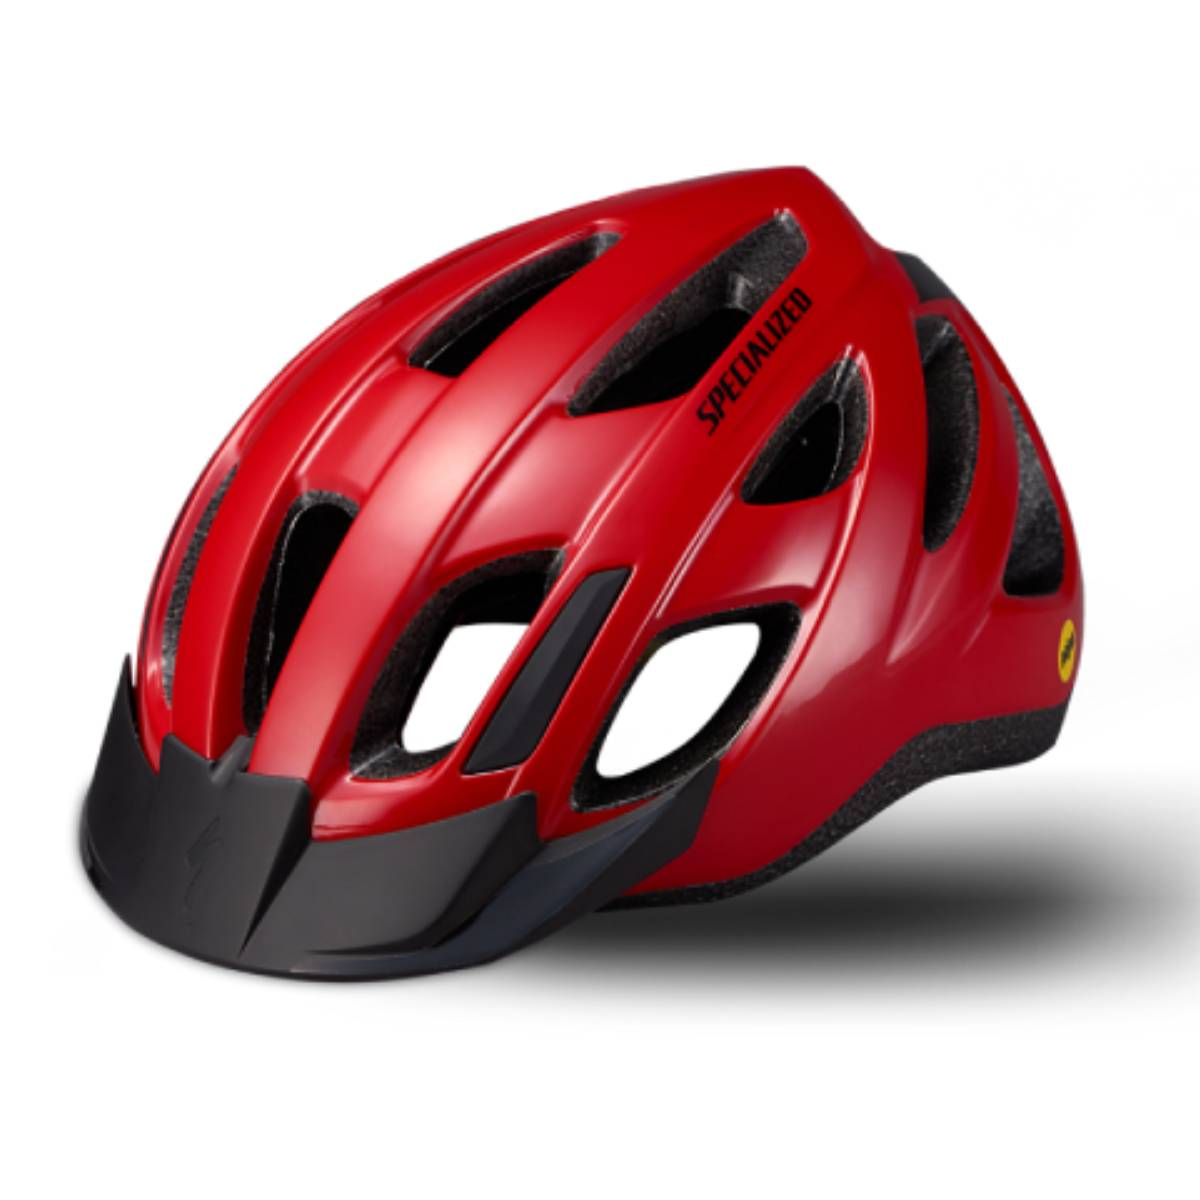 CASQUE SPECIALIZED CENTRO MIPS